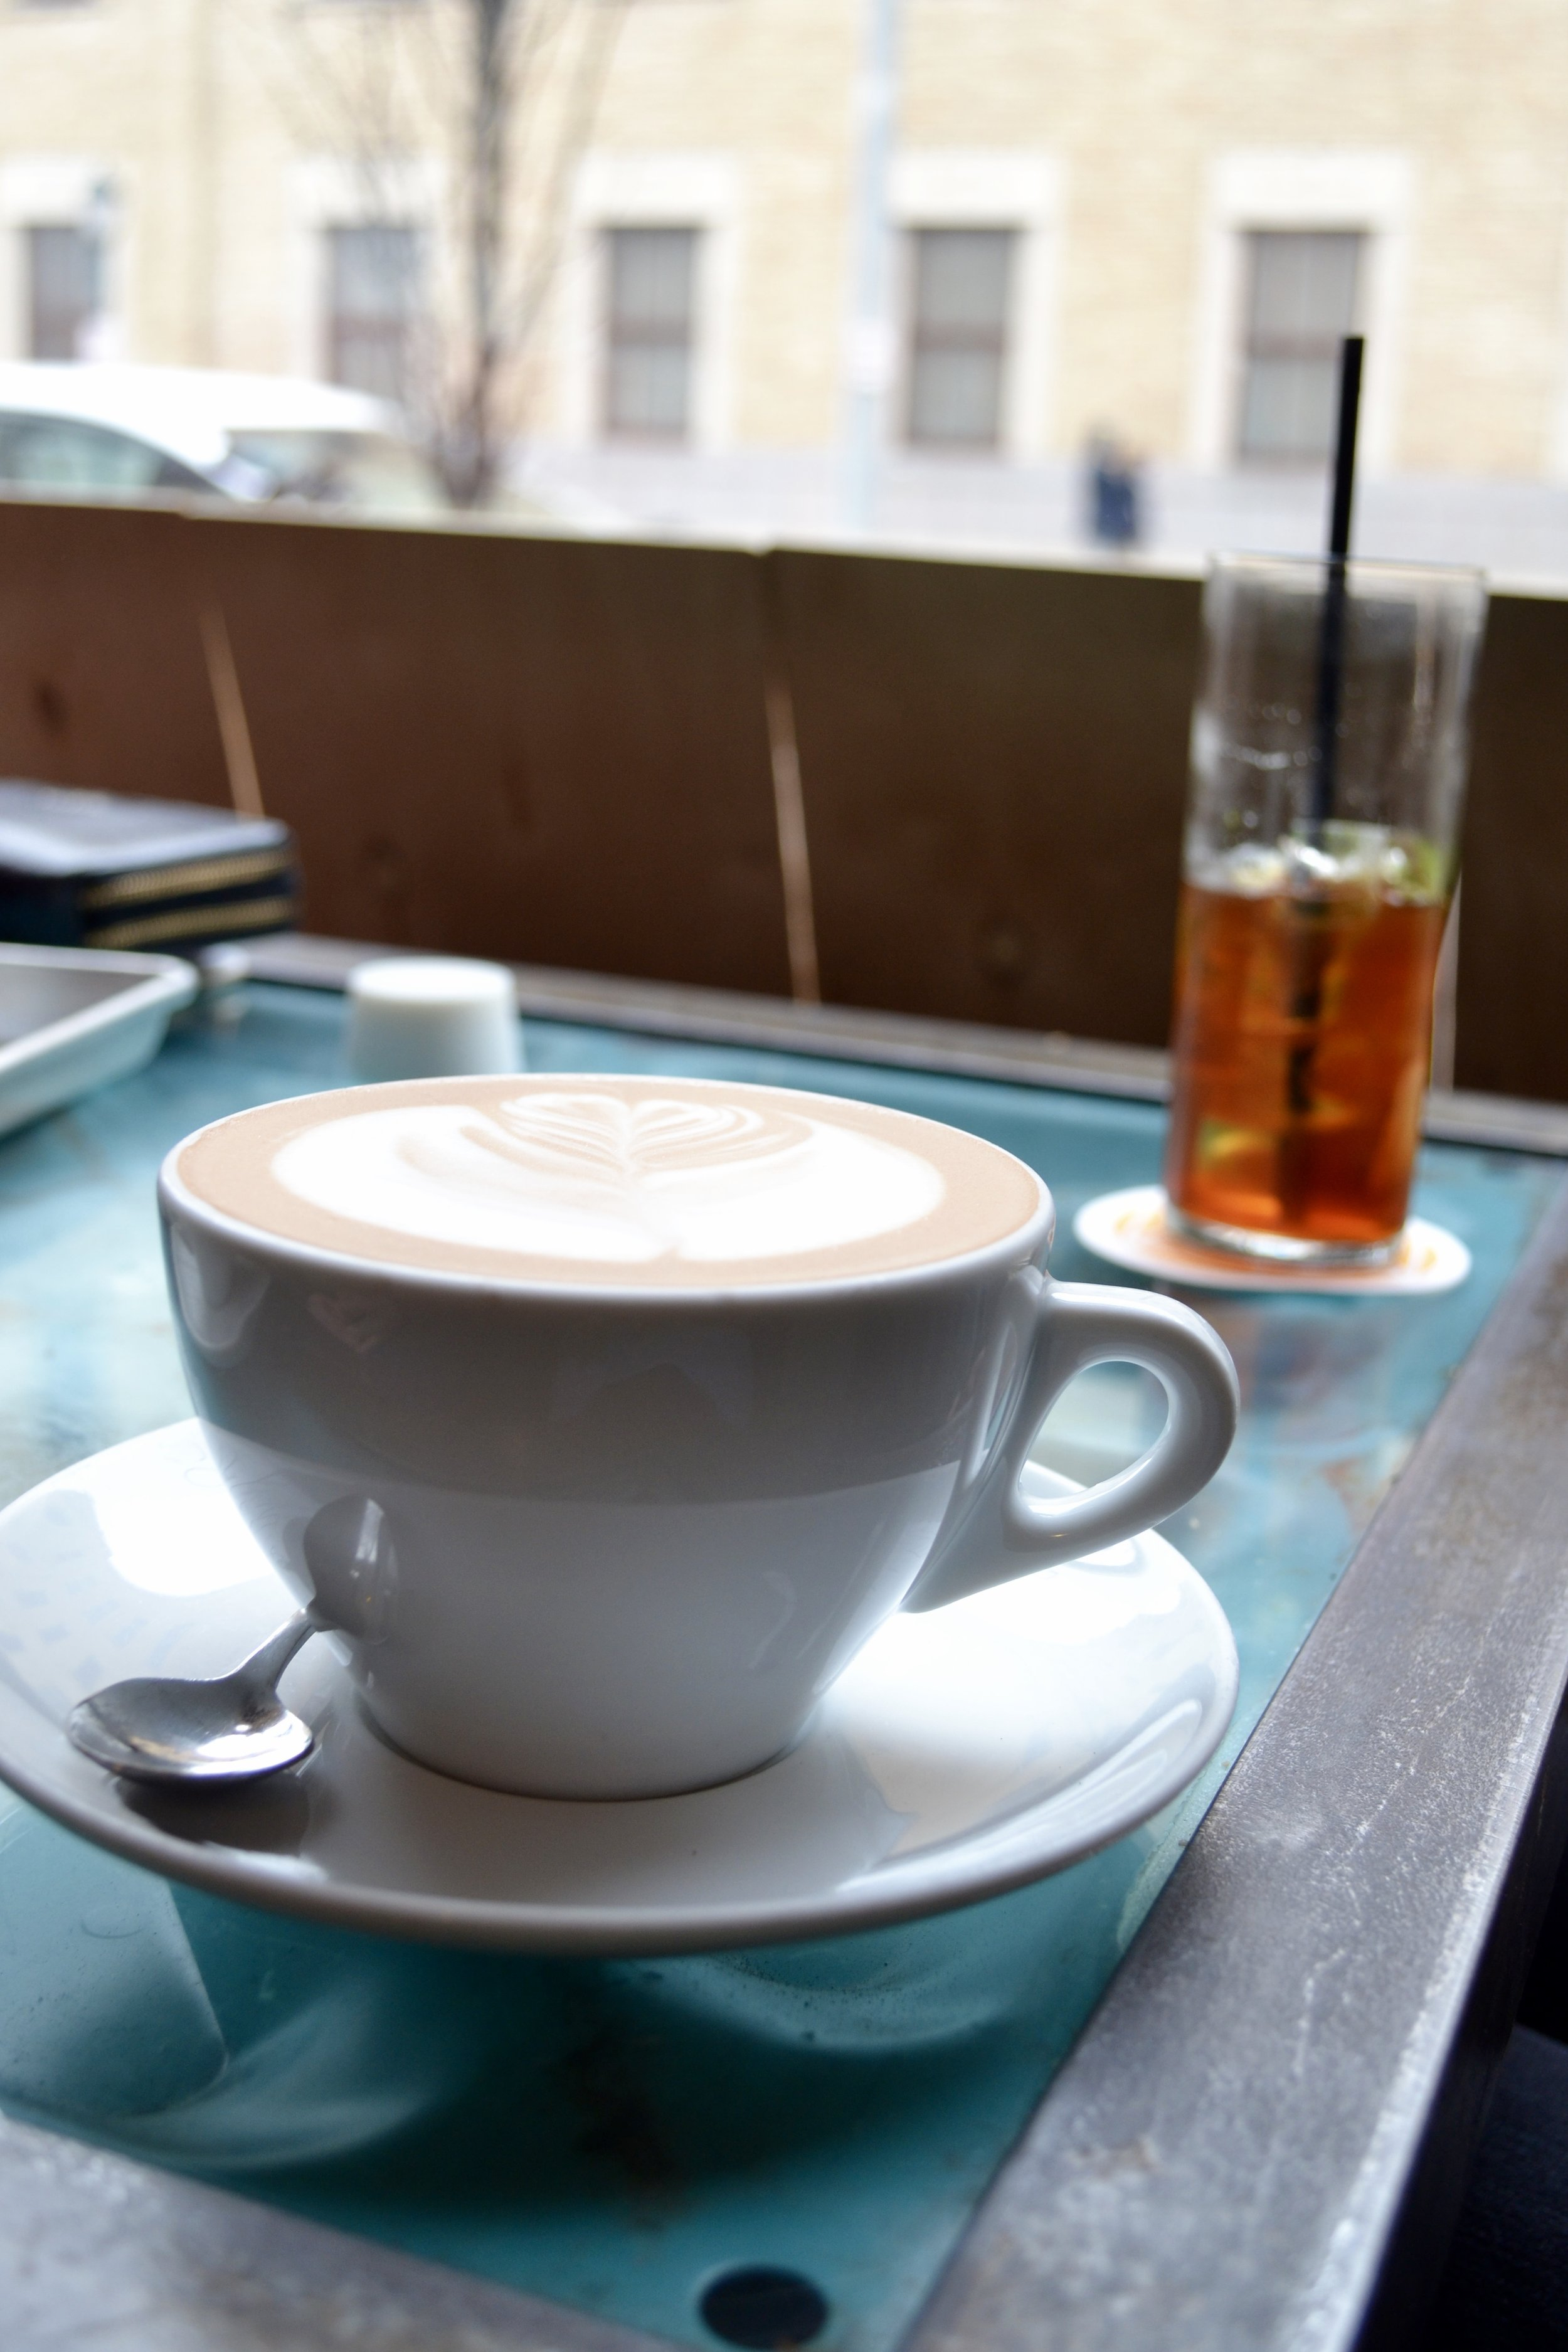 Photographed by Lydia Jackson. Jackson's trip to Blueprint Coffee on the Delmar Loop.